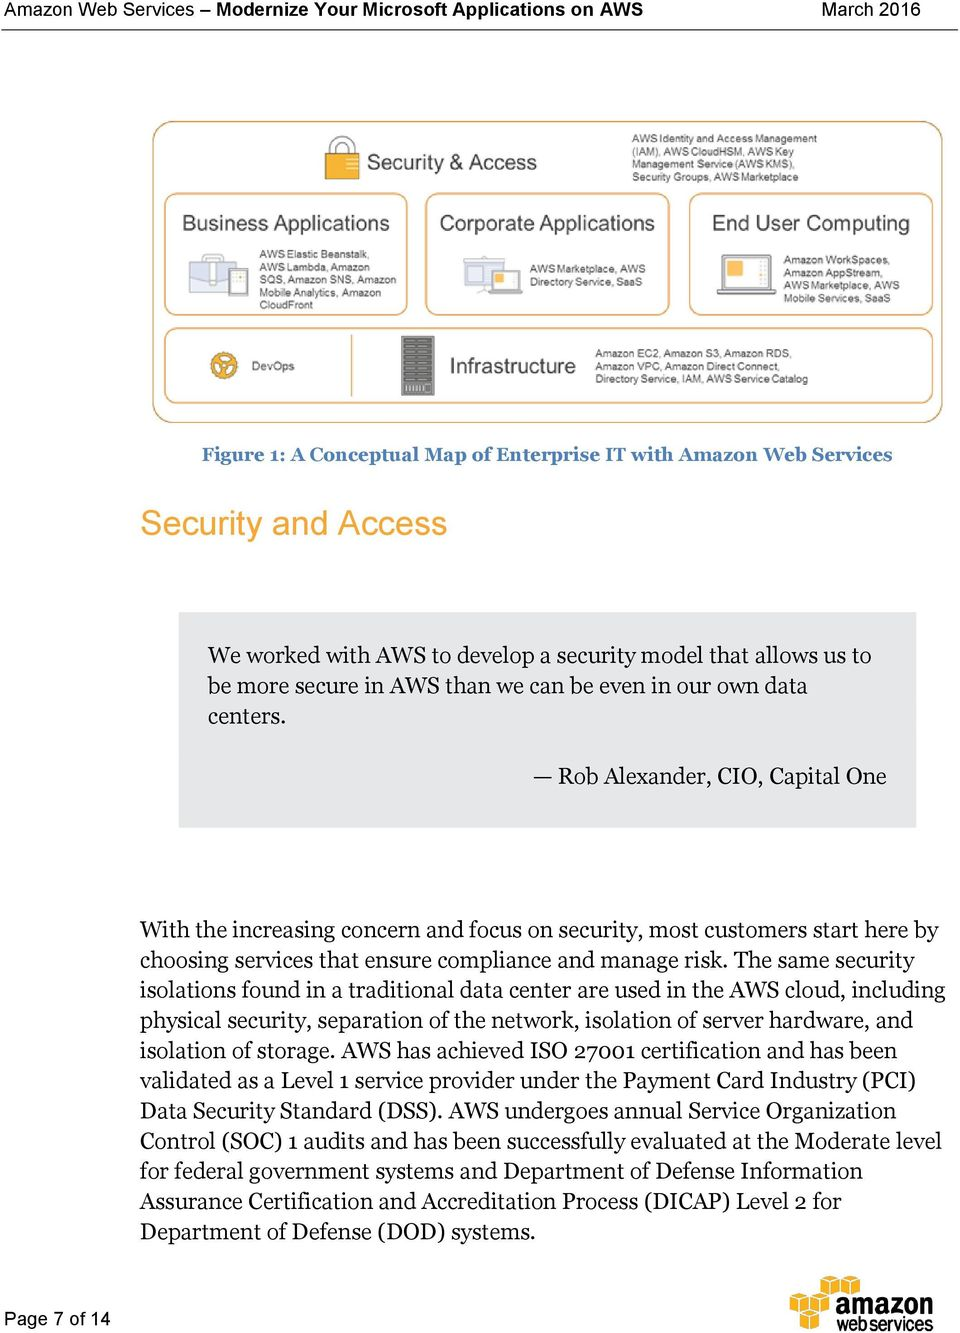 The same security isolations found in a traditional data center are used in the AWS cloud, including physical security, separation of the network, isolation of server hardware, and isolation of